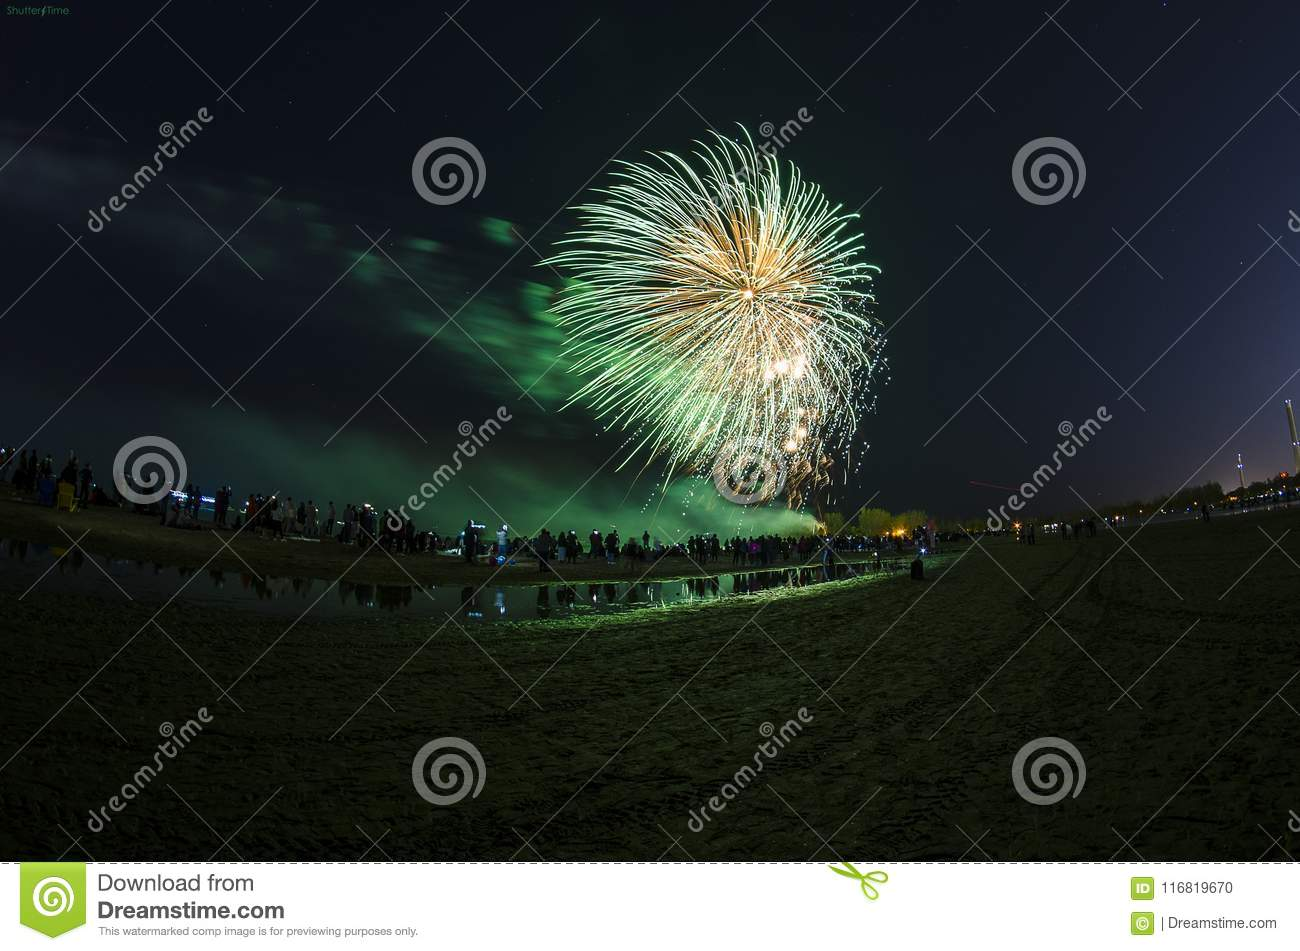 Fireworks Canada wallpaper stock photo. Image of wallpaper